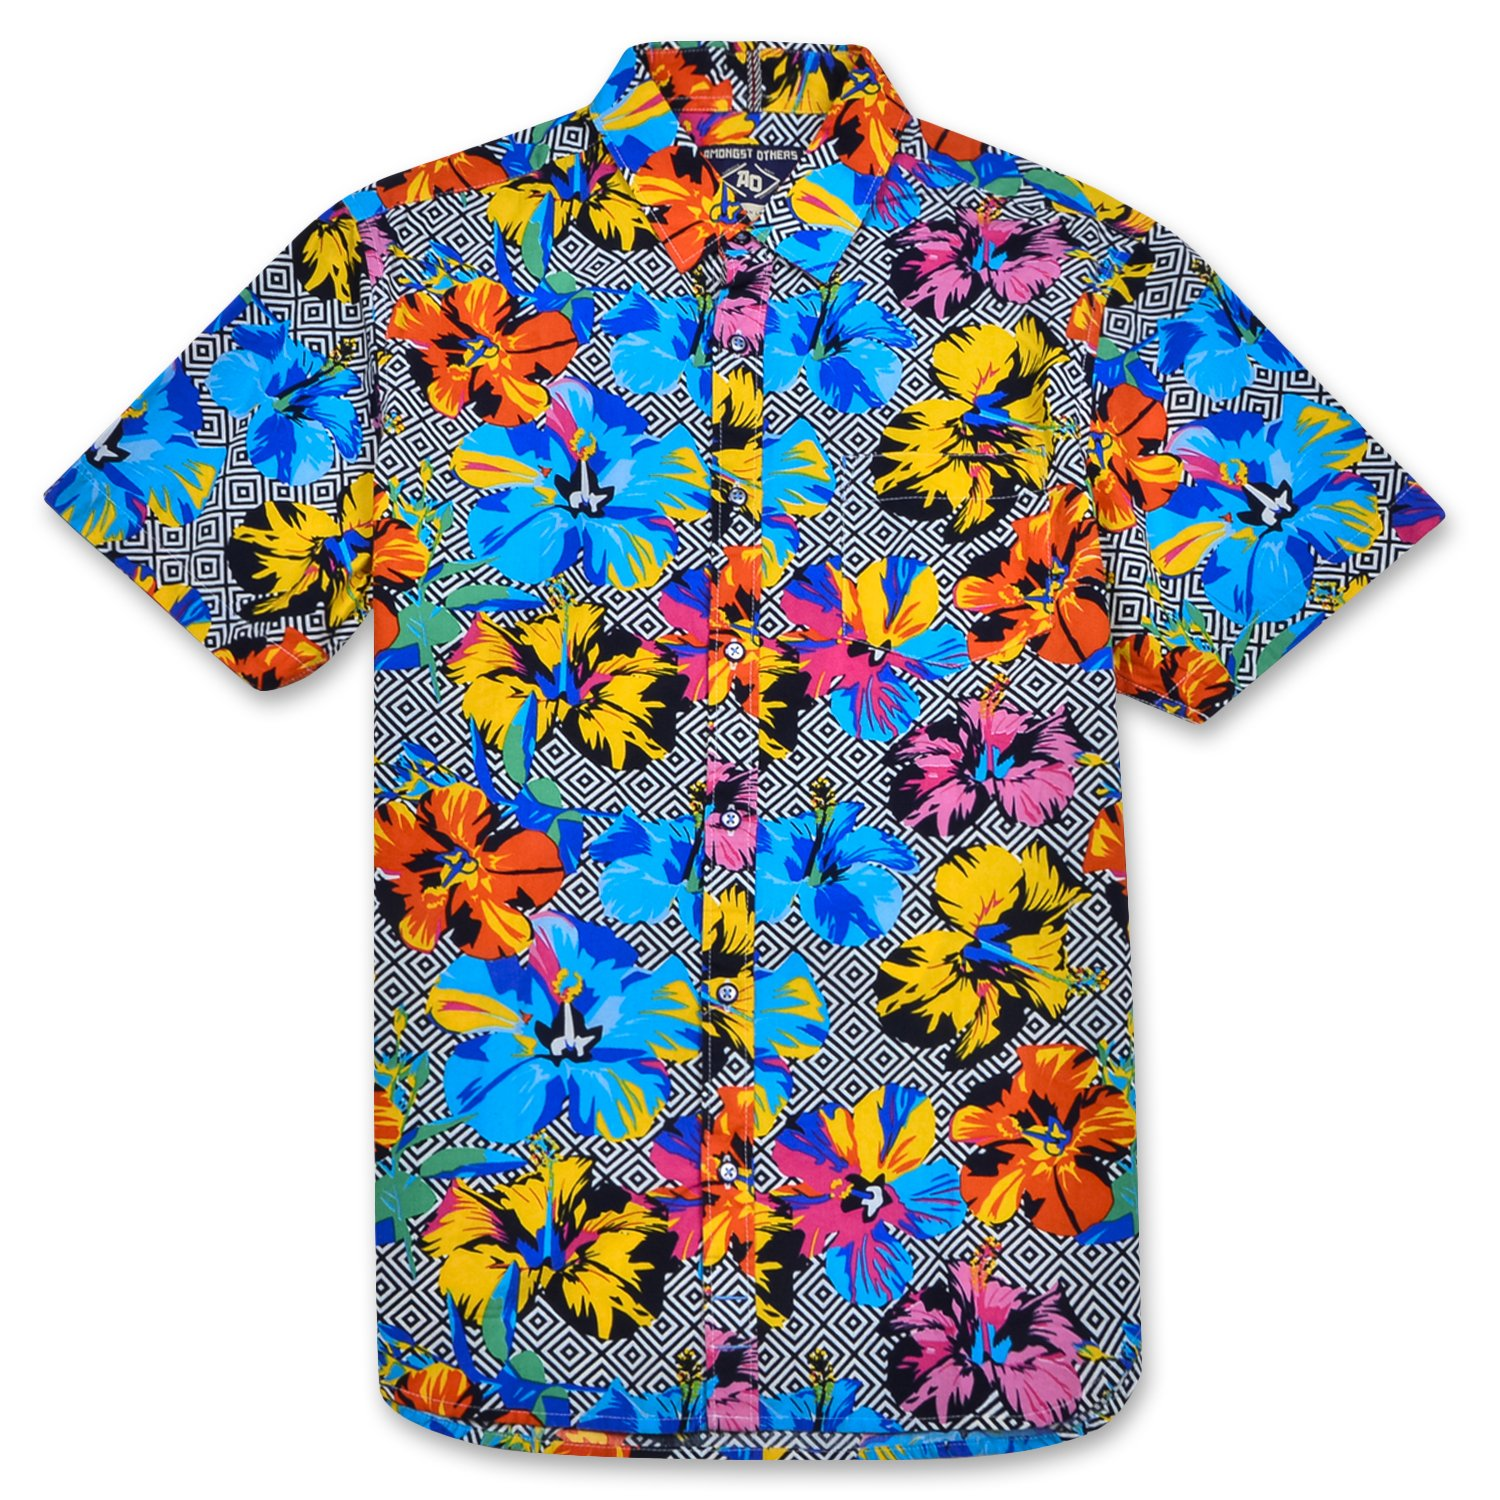 Top1  Amongst Others Men s Short Sleeve Button Down Casual Hawaiian Shirt  with Pocket 3437123a613b